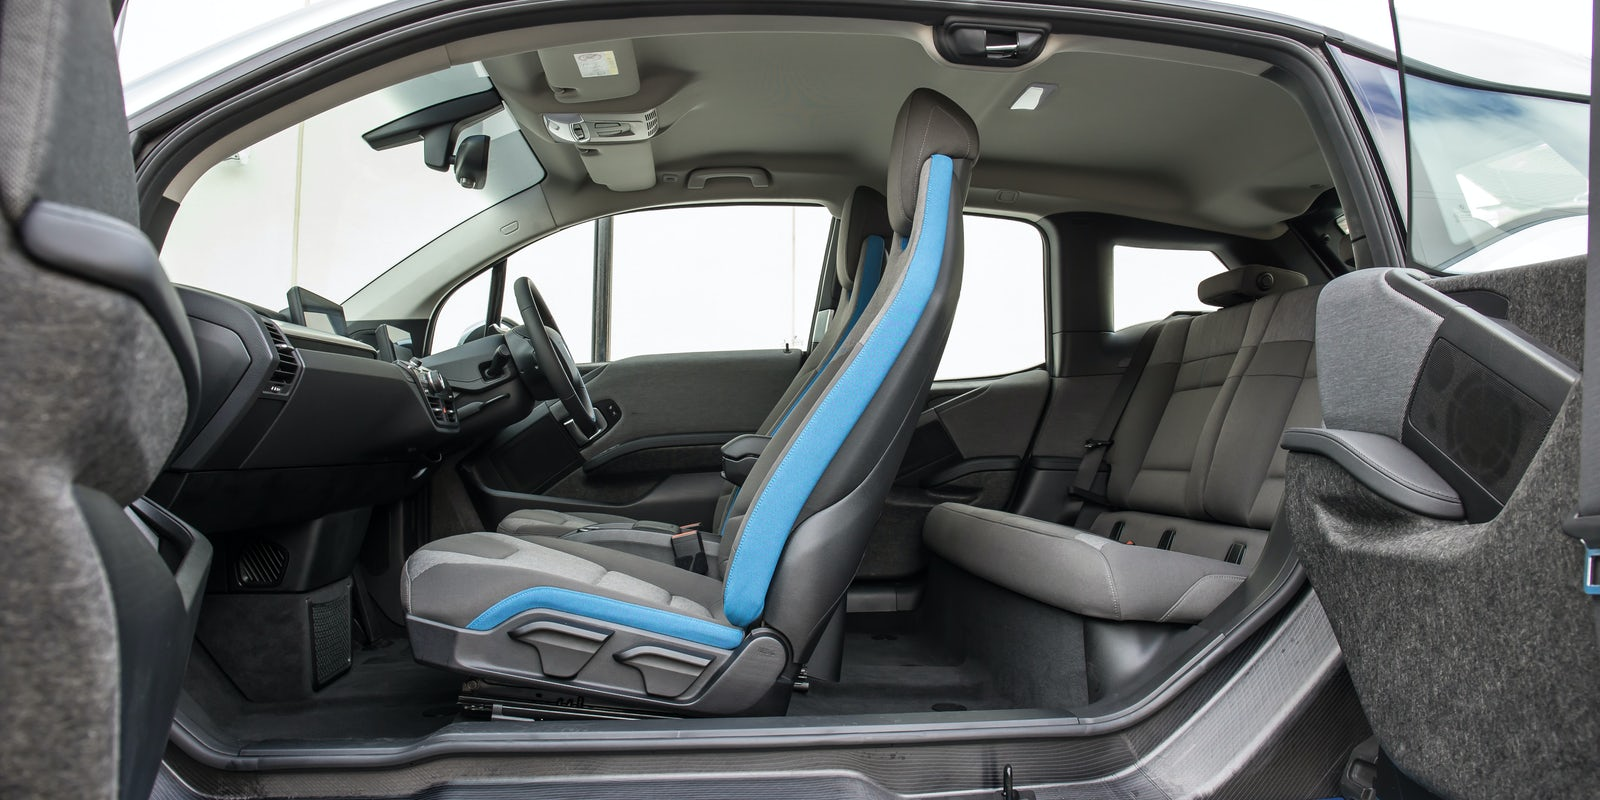 Range Rover Evoque Dimensions >> BMW i3 Boot Space & Dimensions   carwow